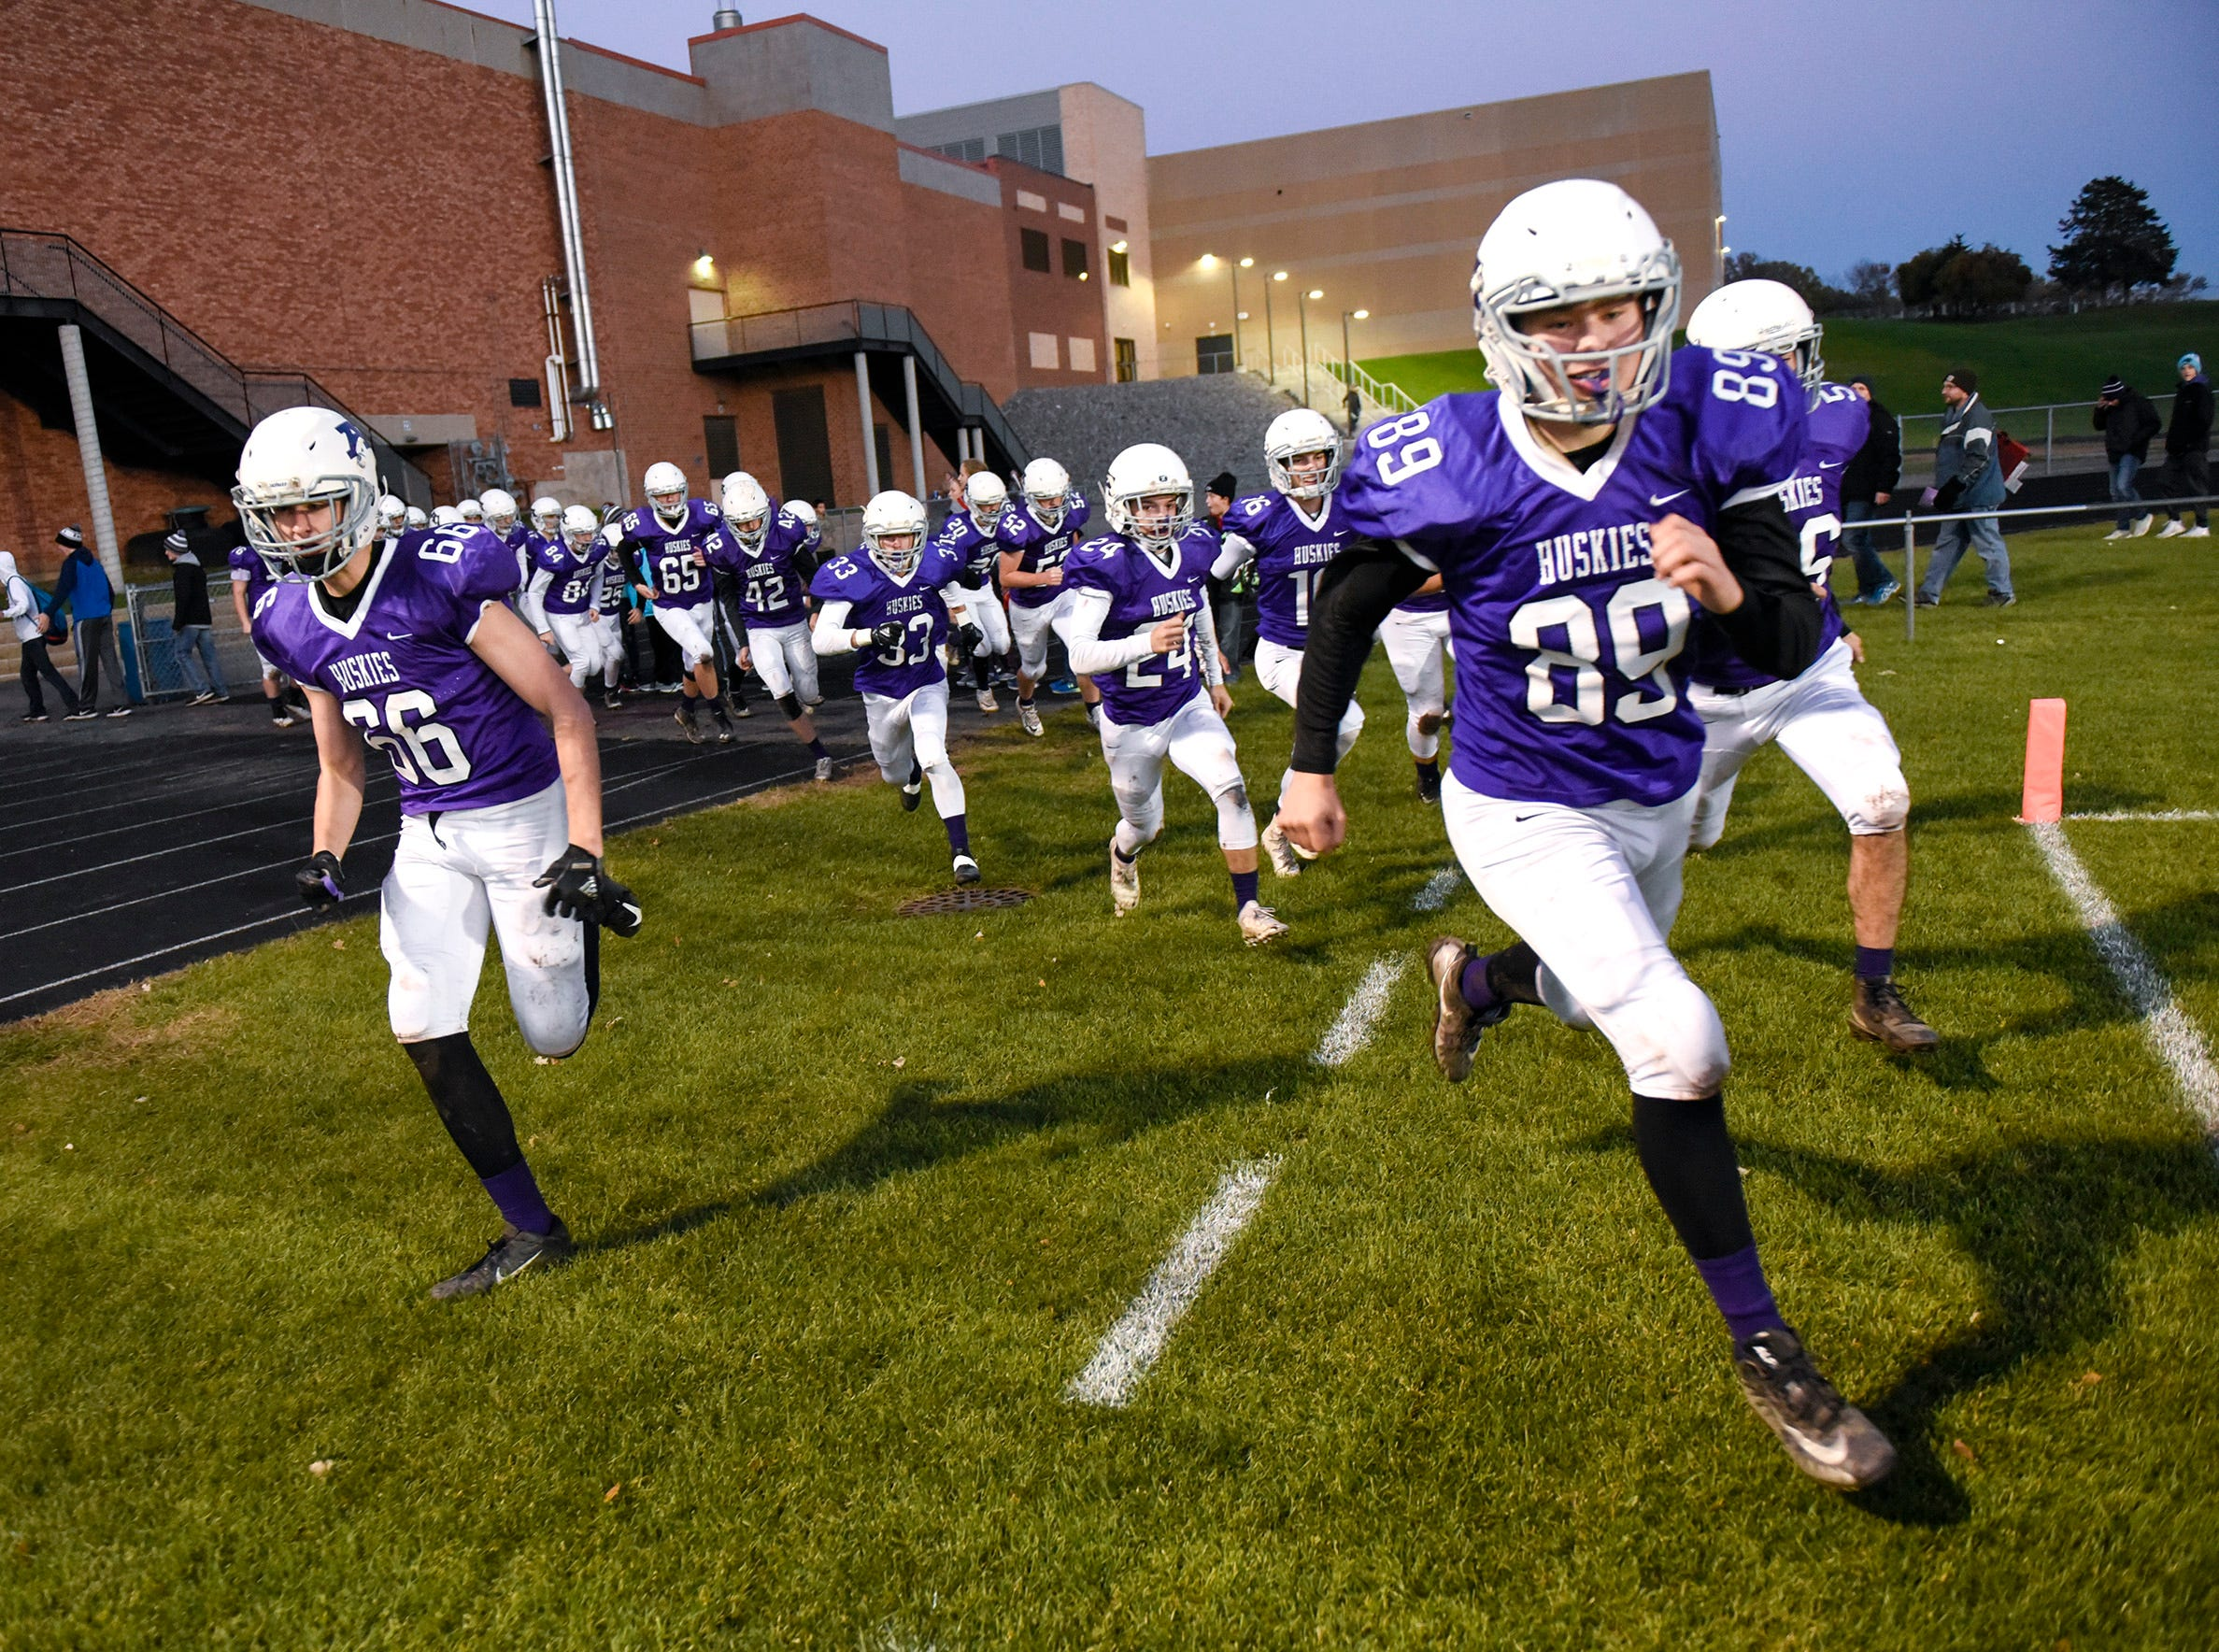 Albany players come on the field before their game against Foley Friday, Oct. 12, in Albany.